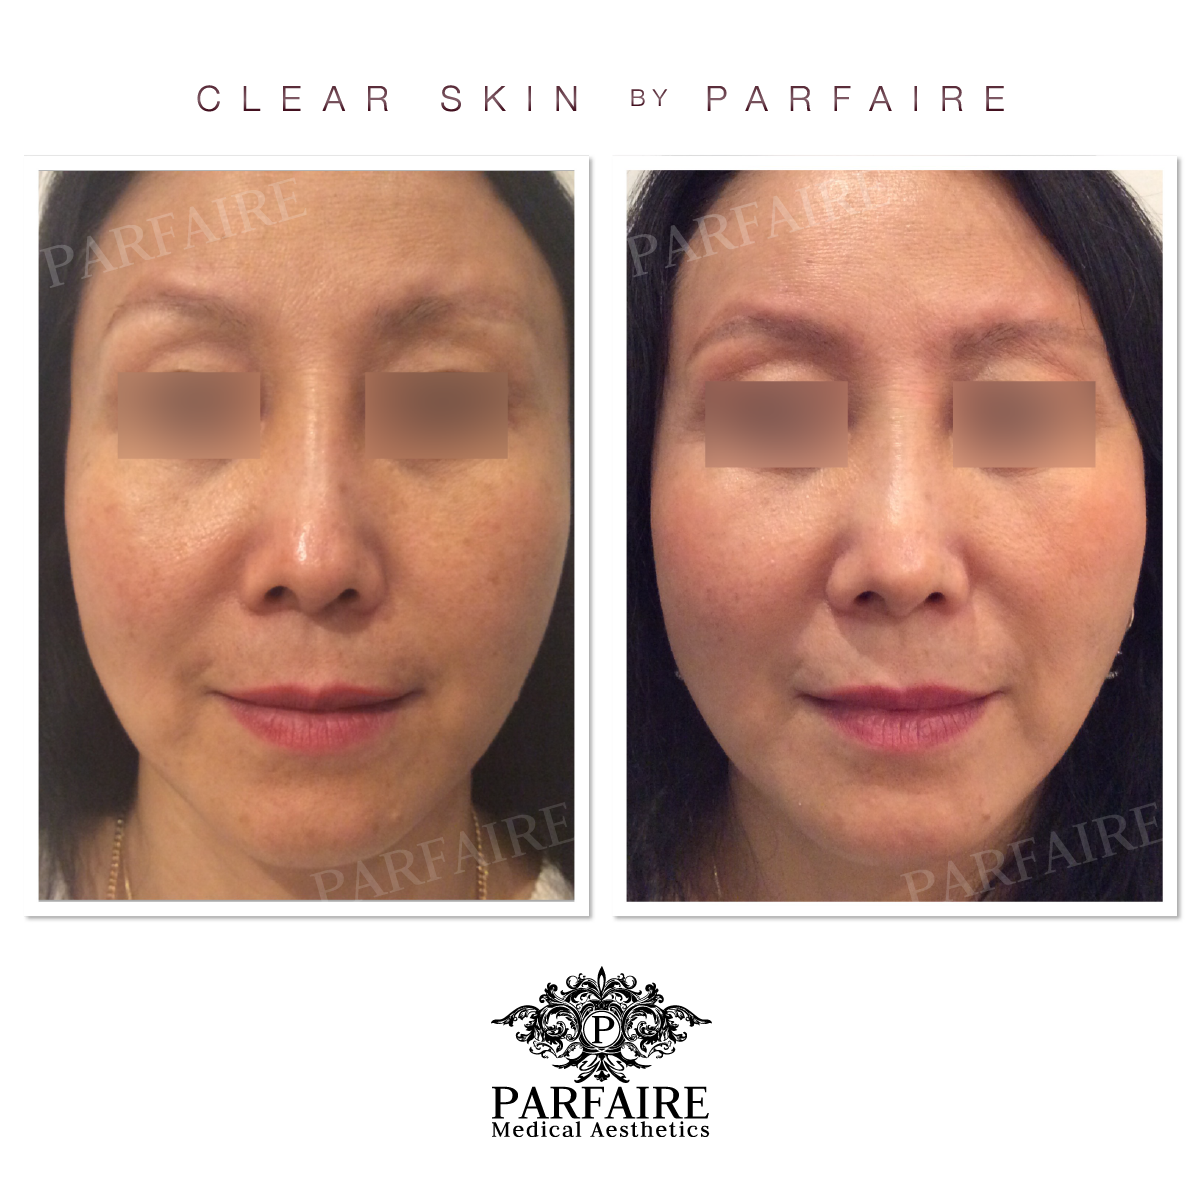 Clear Skin treatment by Parfaire